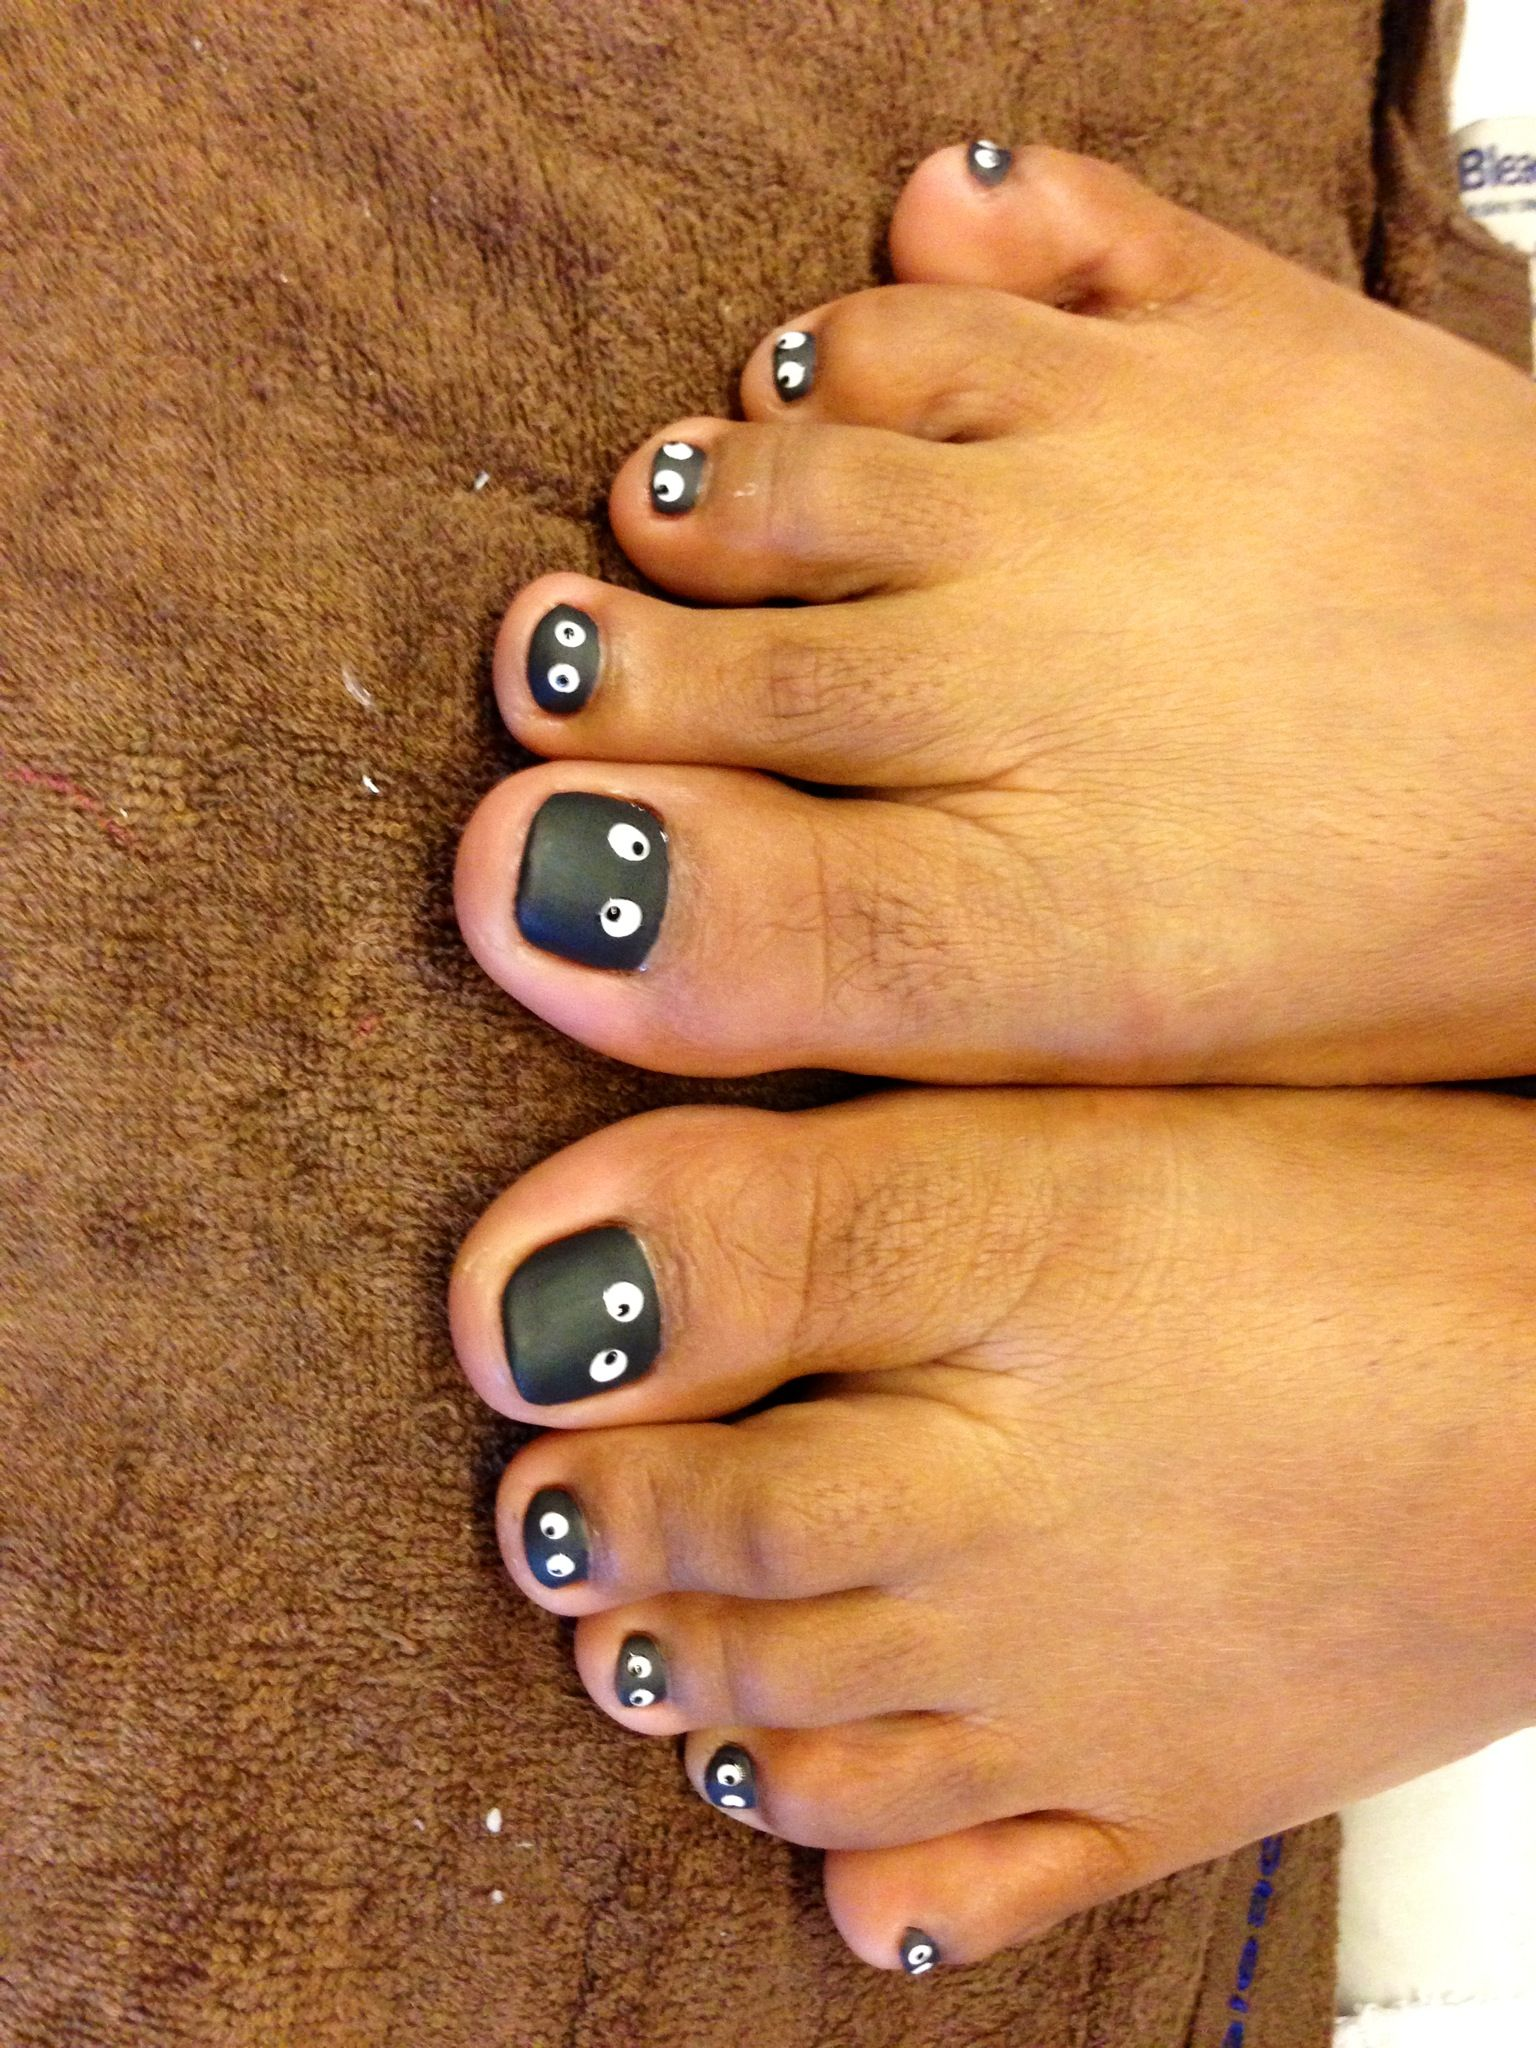 Ghost Nails Pedicure Designs Toenails Cute Toe Nails Pretty Acrylic Nails